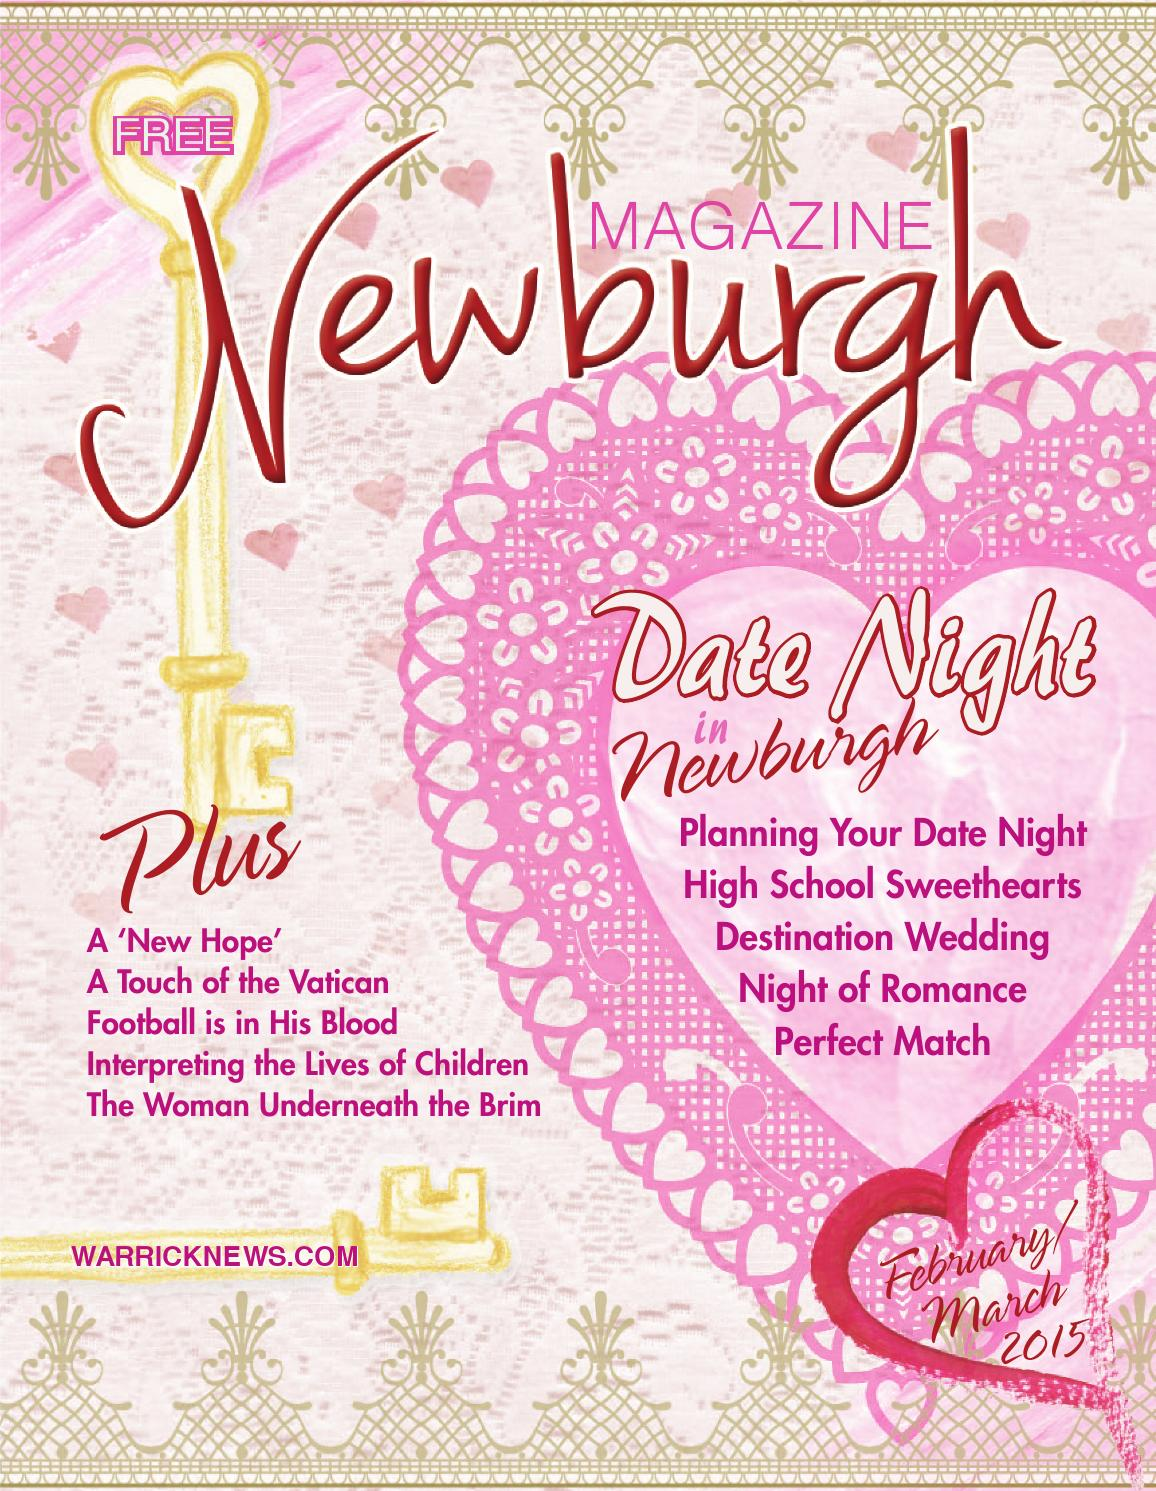 Newburgh Magazine February/March 2015 by Warrick Publishing - The ...